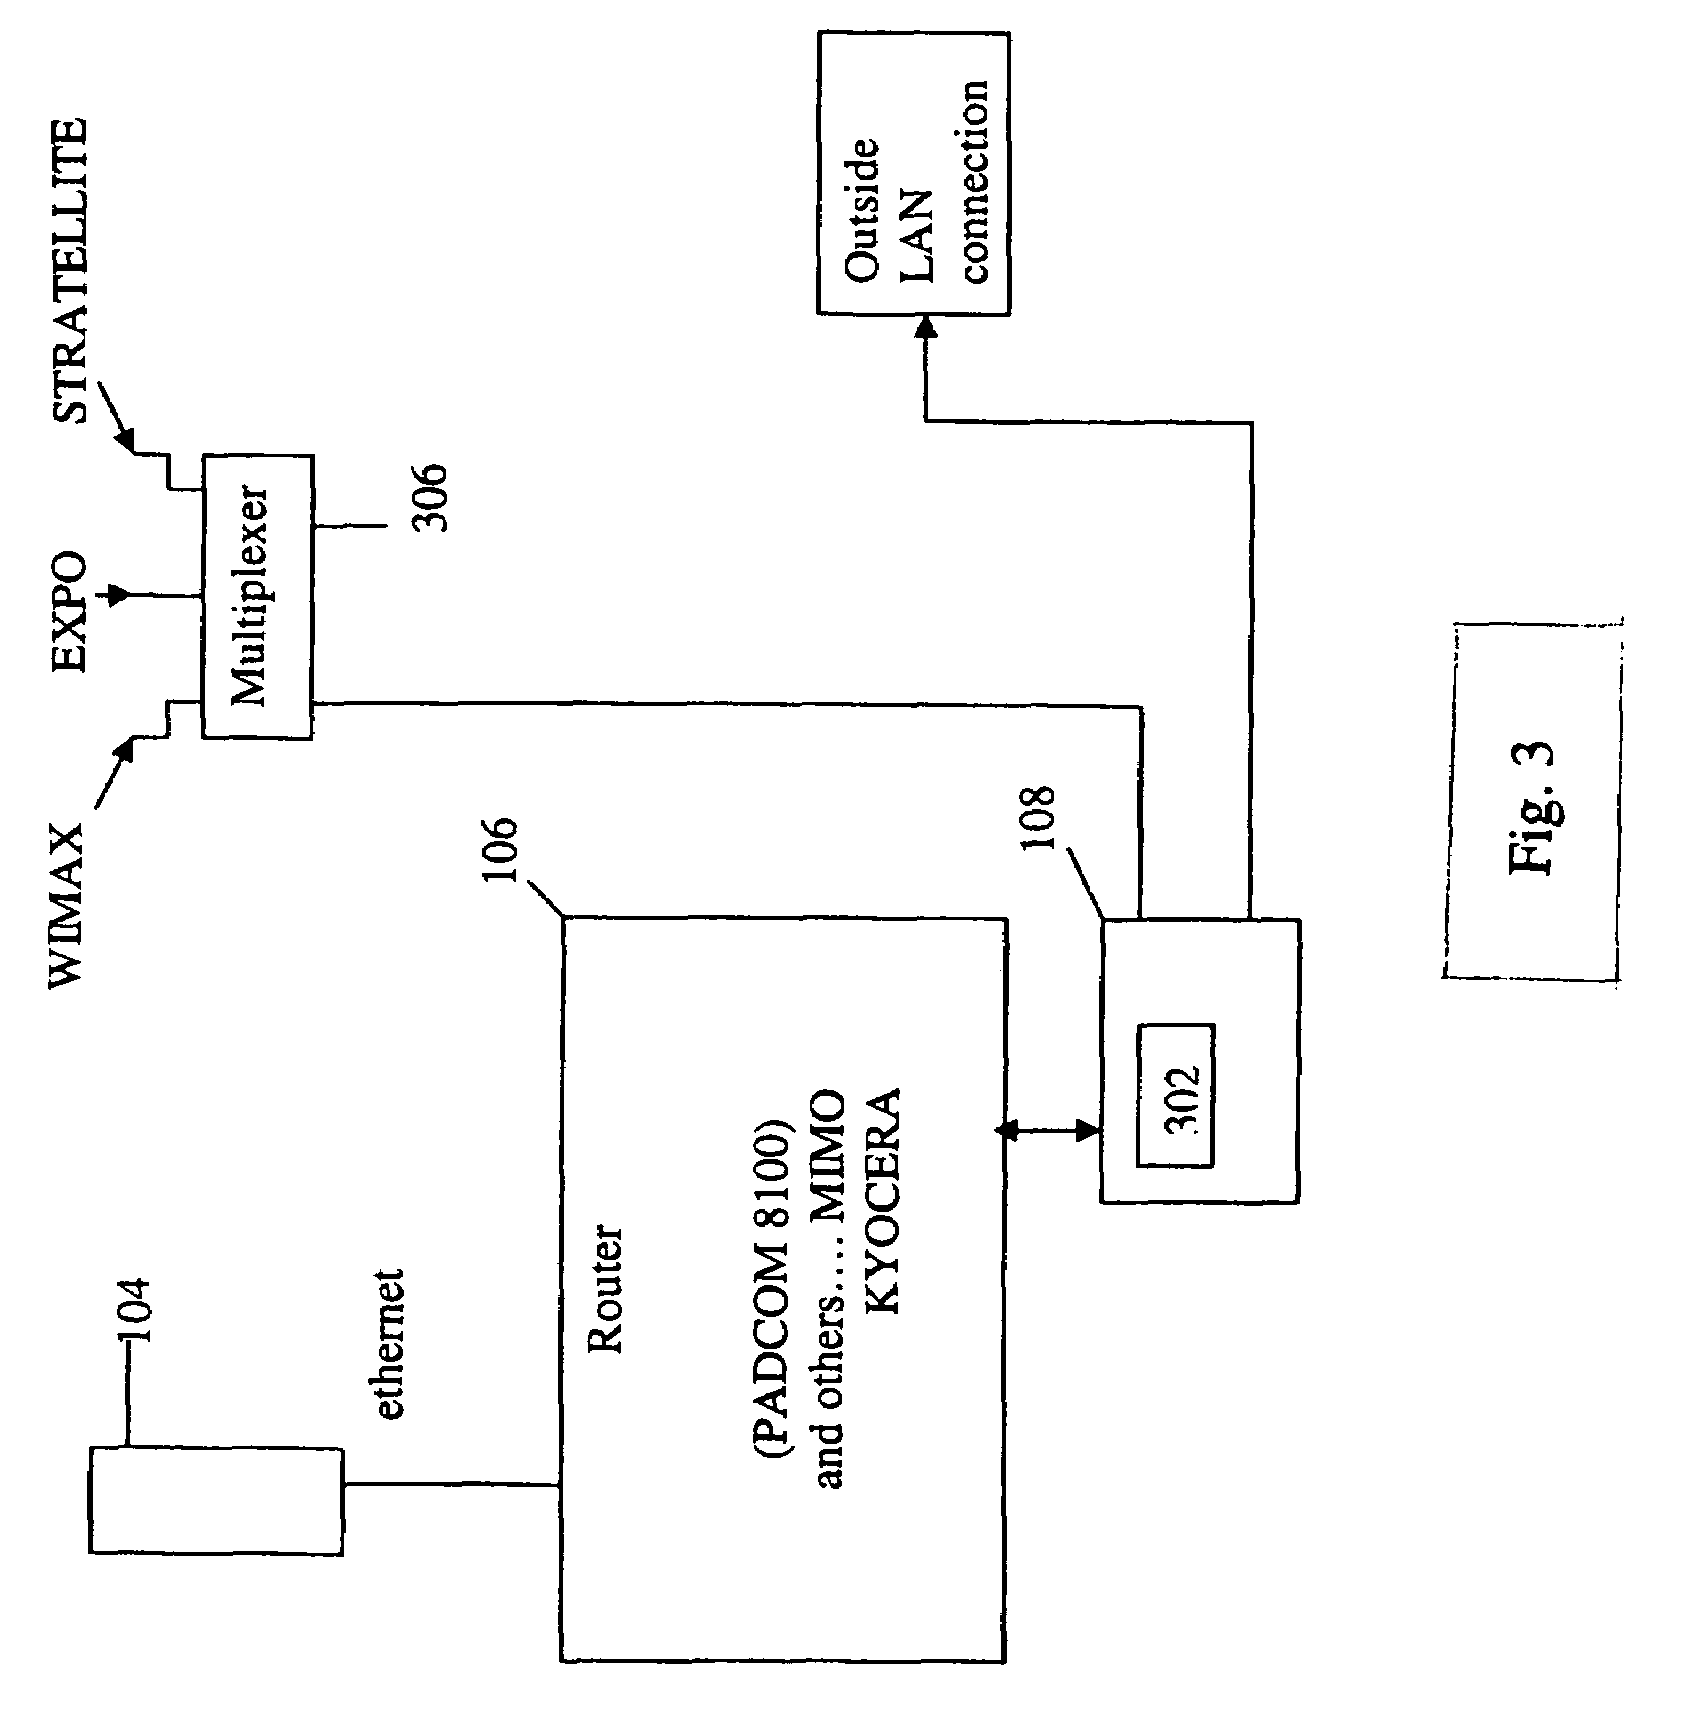 Character Generator Computer Aided Design : Patent us apparatus and method for mobile